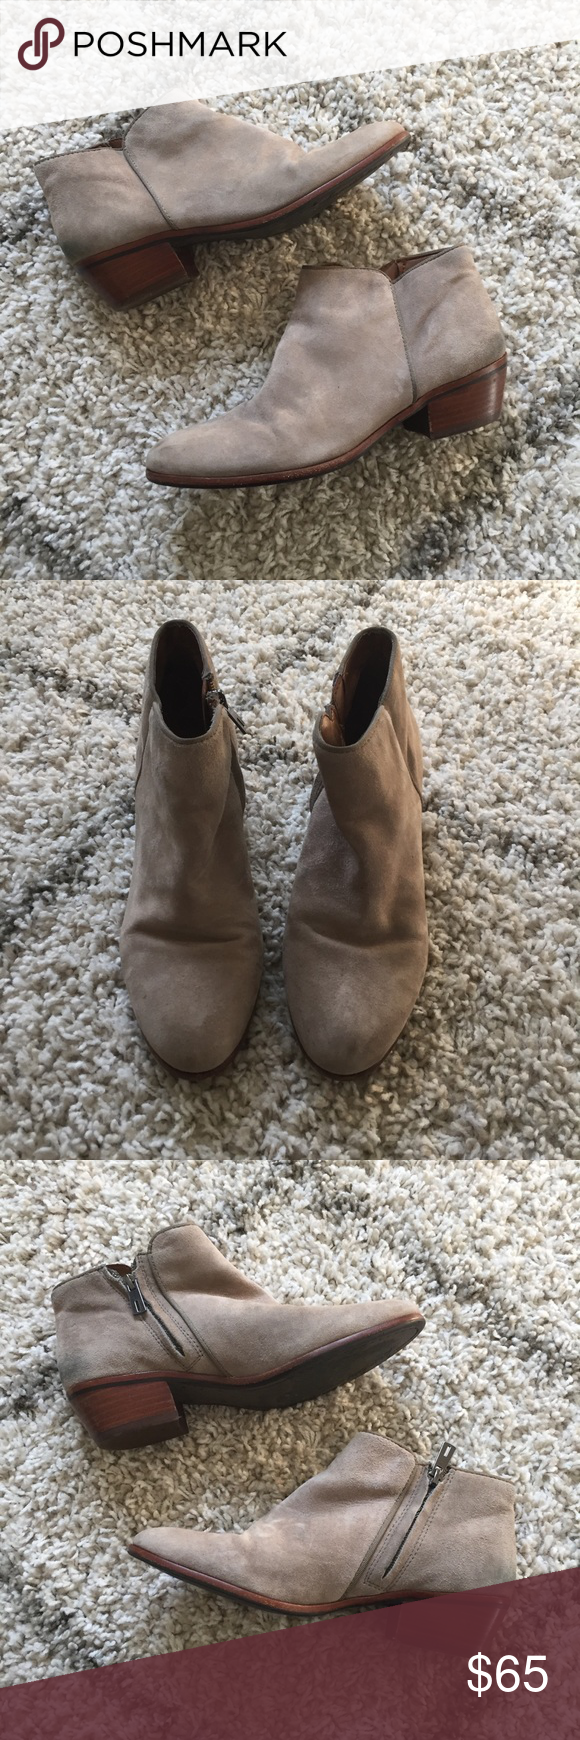 SAM EDELMAN GREAT CONDITION PETTY GRAY ANKLE BOOTS Very gently used! Only wear to note is there is some Indigo staining on the back lower suede near the heels as pictured. There's a small spot of indigo dye from jeans as well on one of the sides as pictured. Color is a gray suede. These are super cute with flare jeans or skinny jeans.   NO TRADES  NO MODELING Sam Edelman Shoes Ankle Boots & Booties #skinnyjeansandankleboots